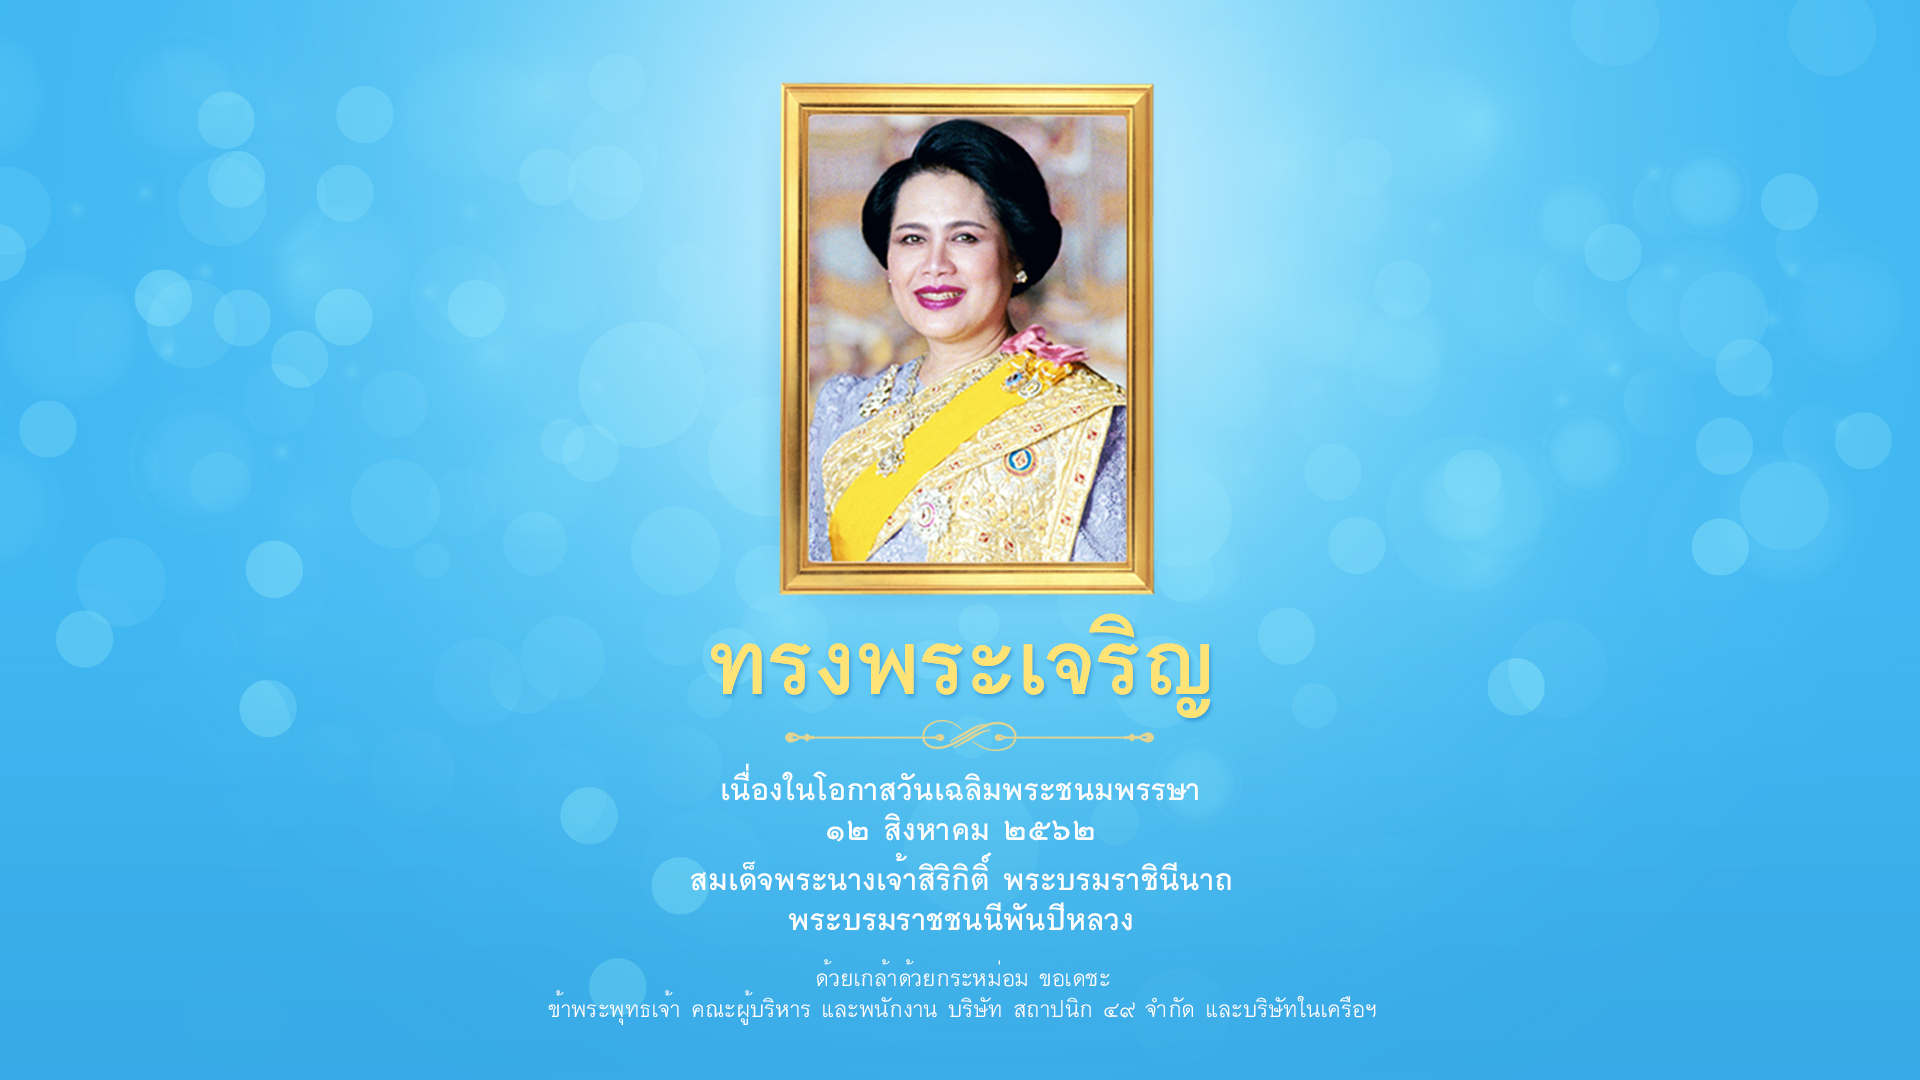 Her Majesty Queen Sirikit The Queen Mother